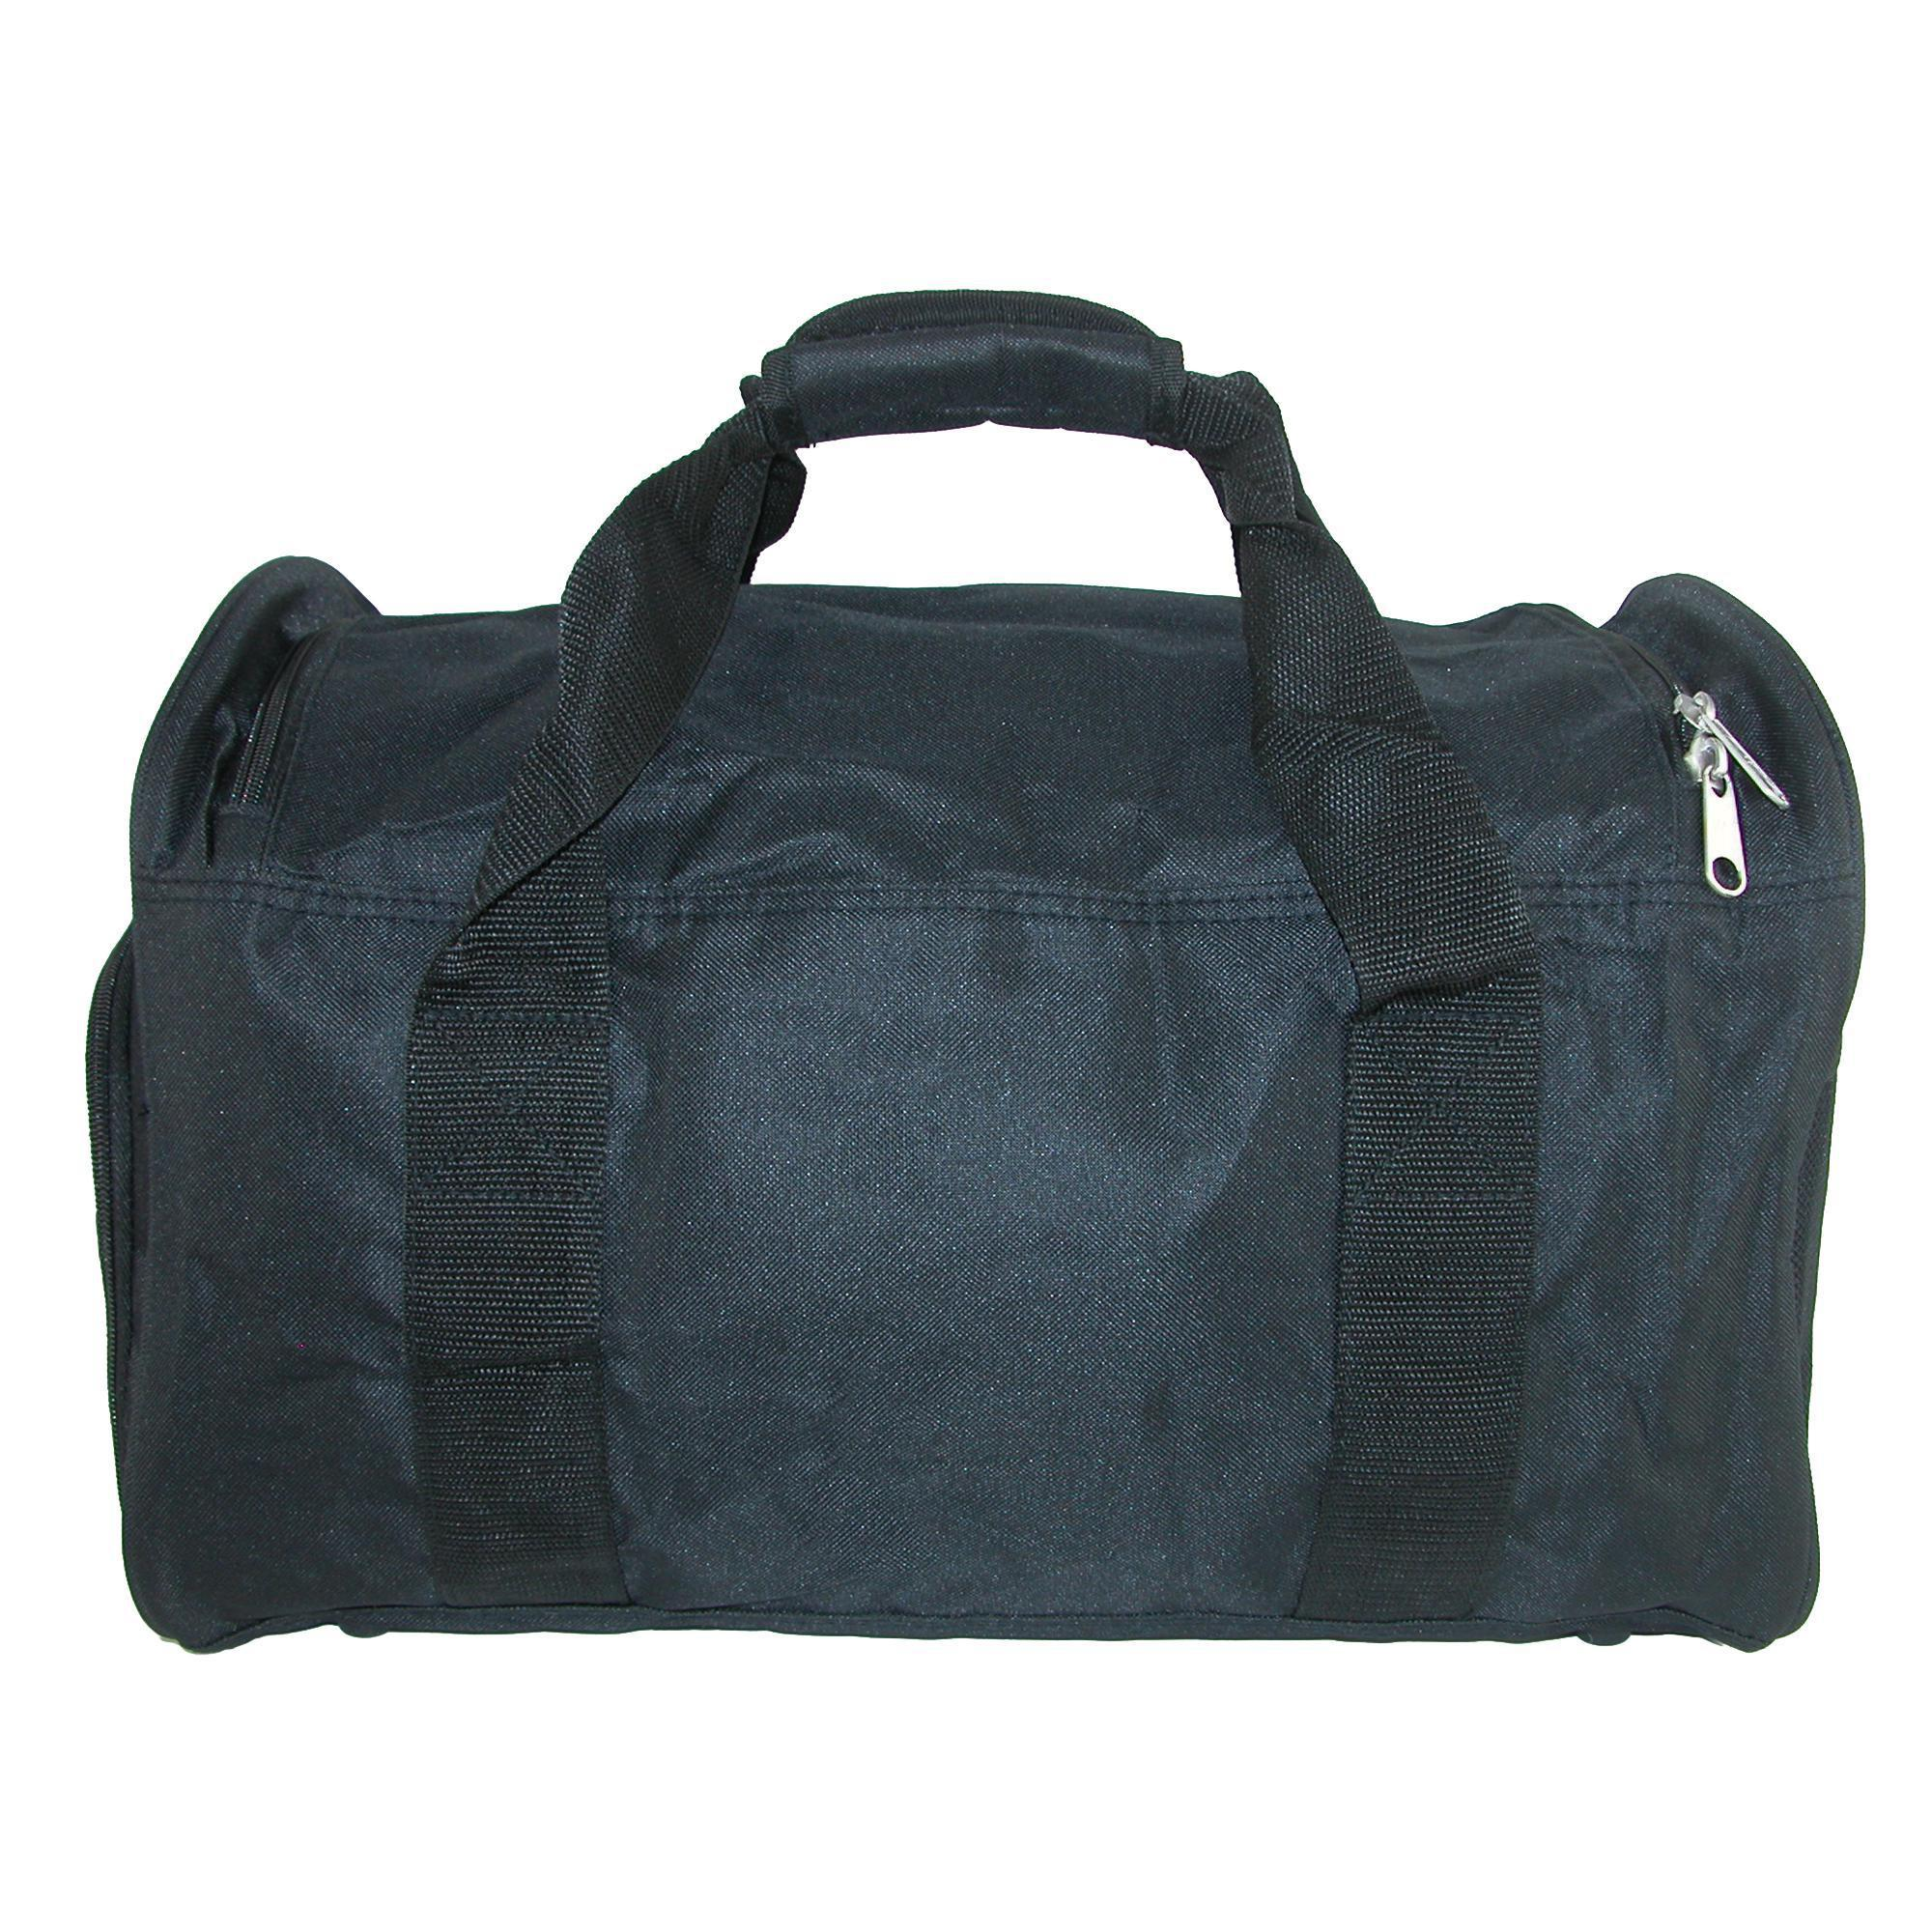 950c8e5cf7 New Everest Sports Duffel Gym Bag with Wet Pocket